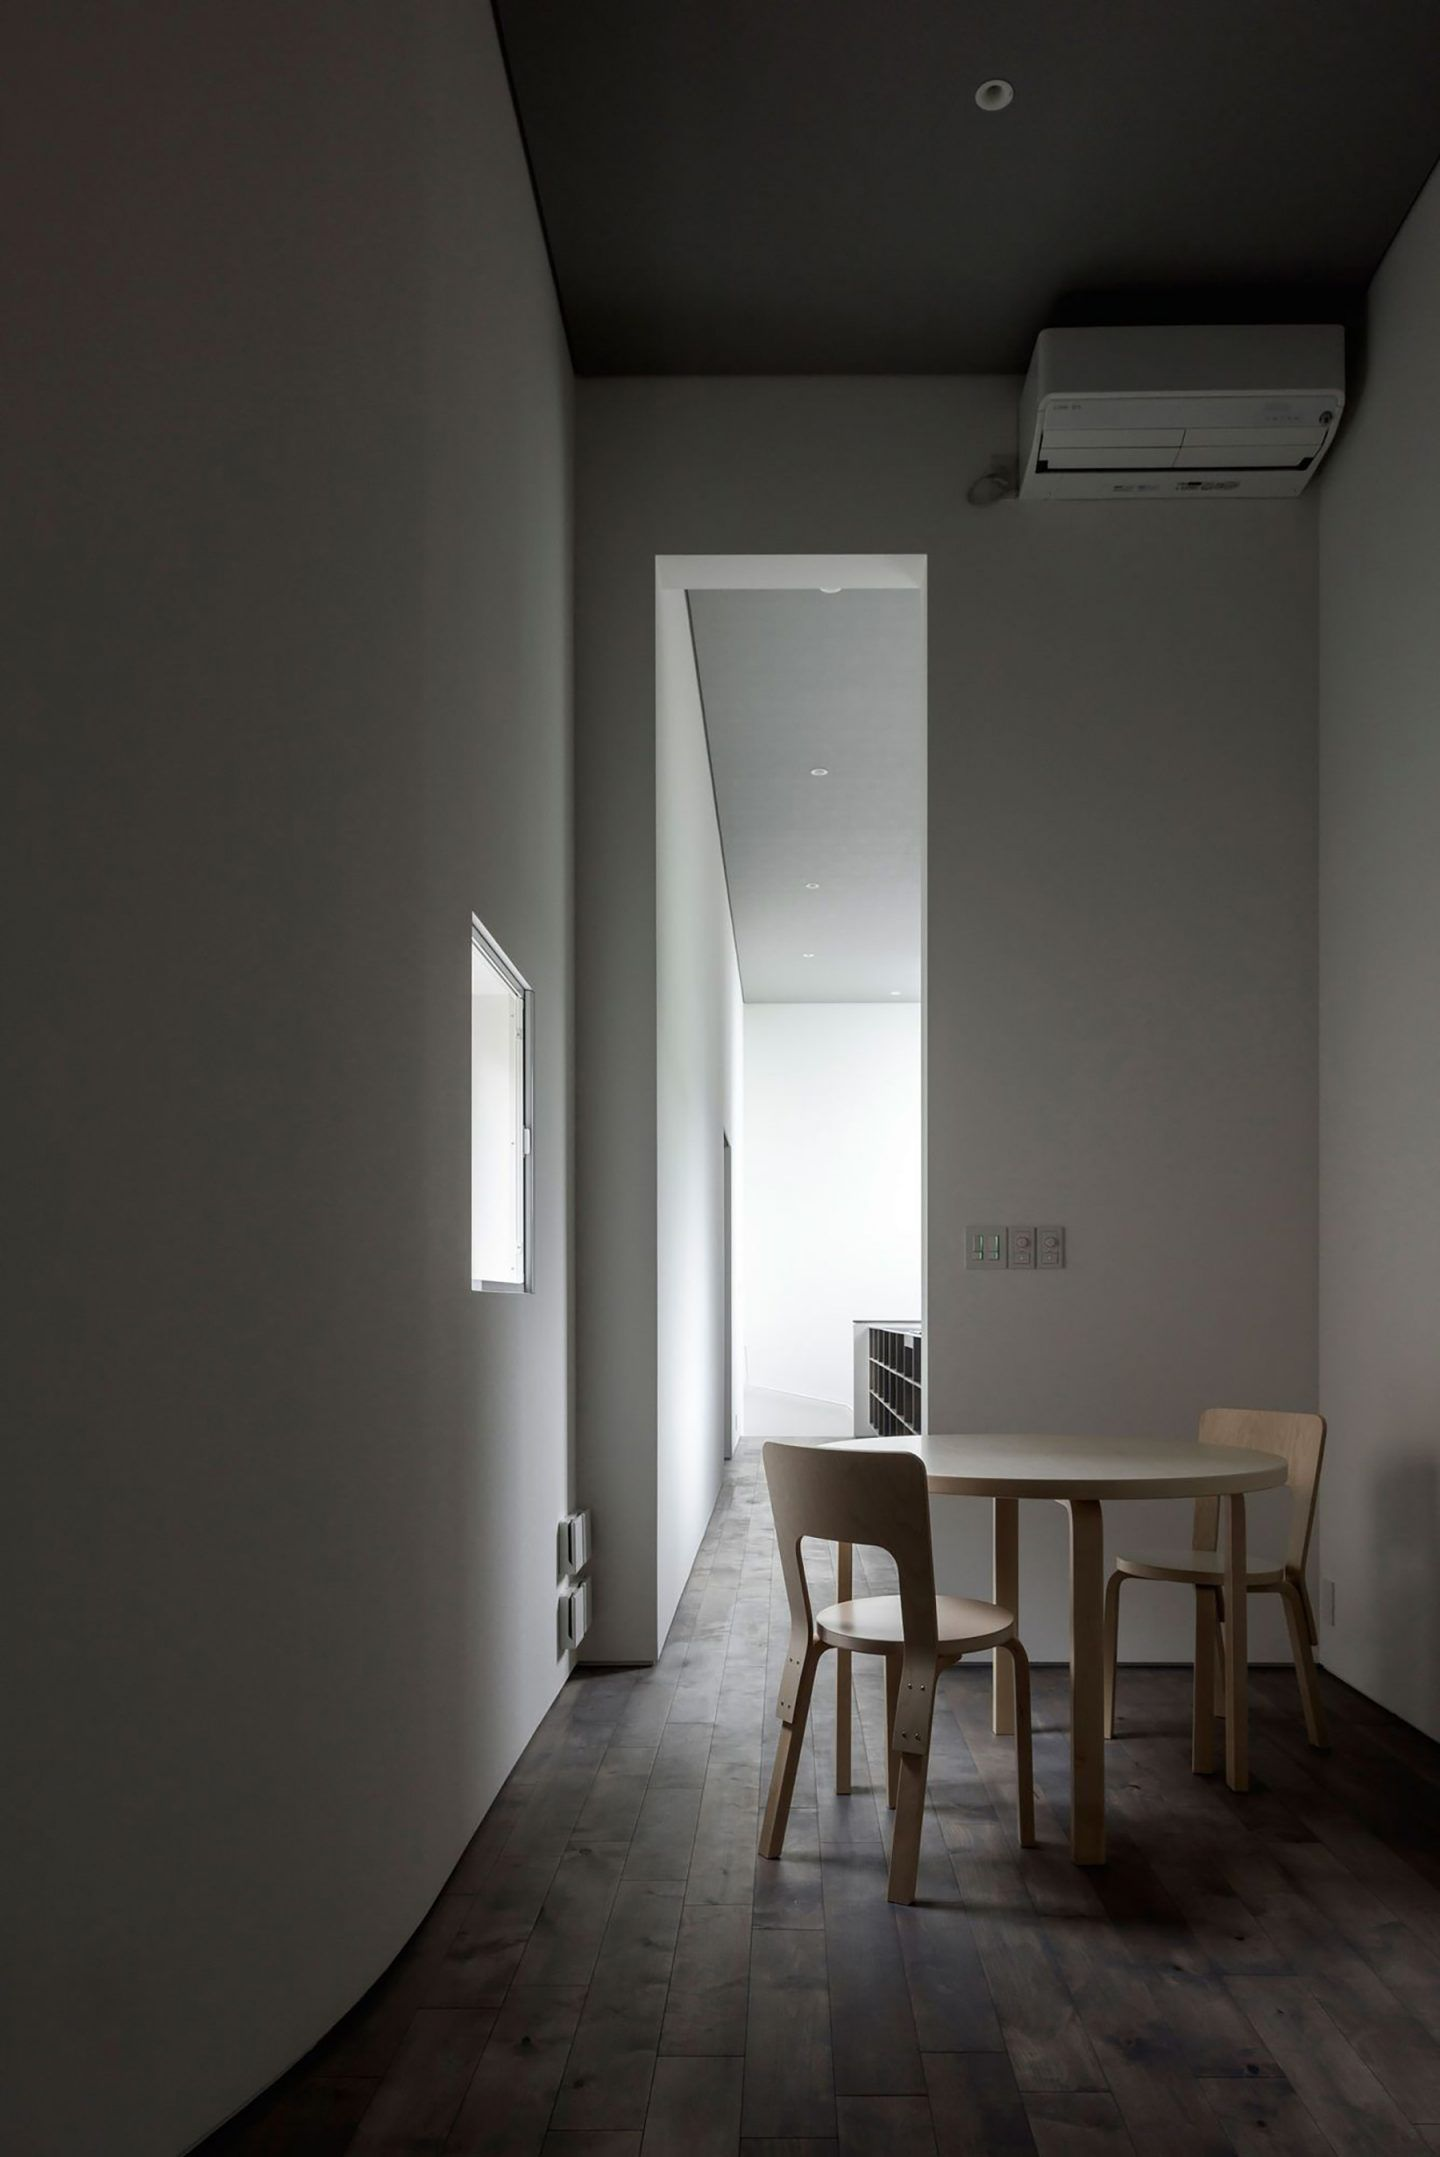 IGNANT-Architecture-Jun-Igarashi-Corridor-Of-The-Fold-16